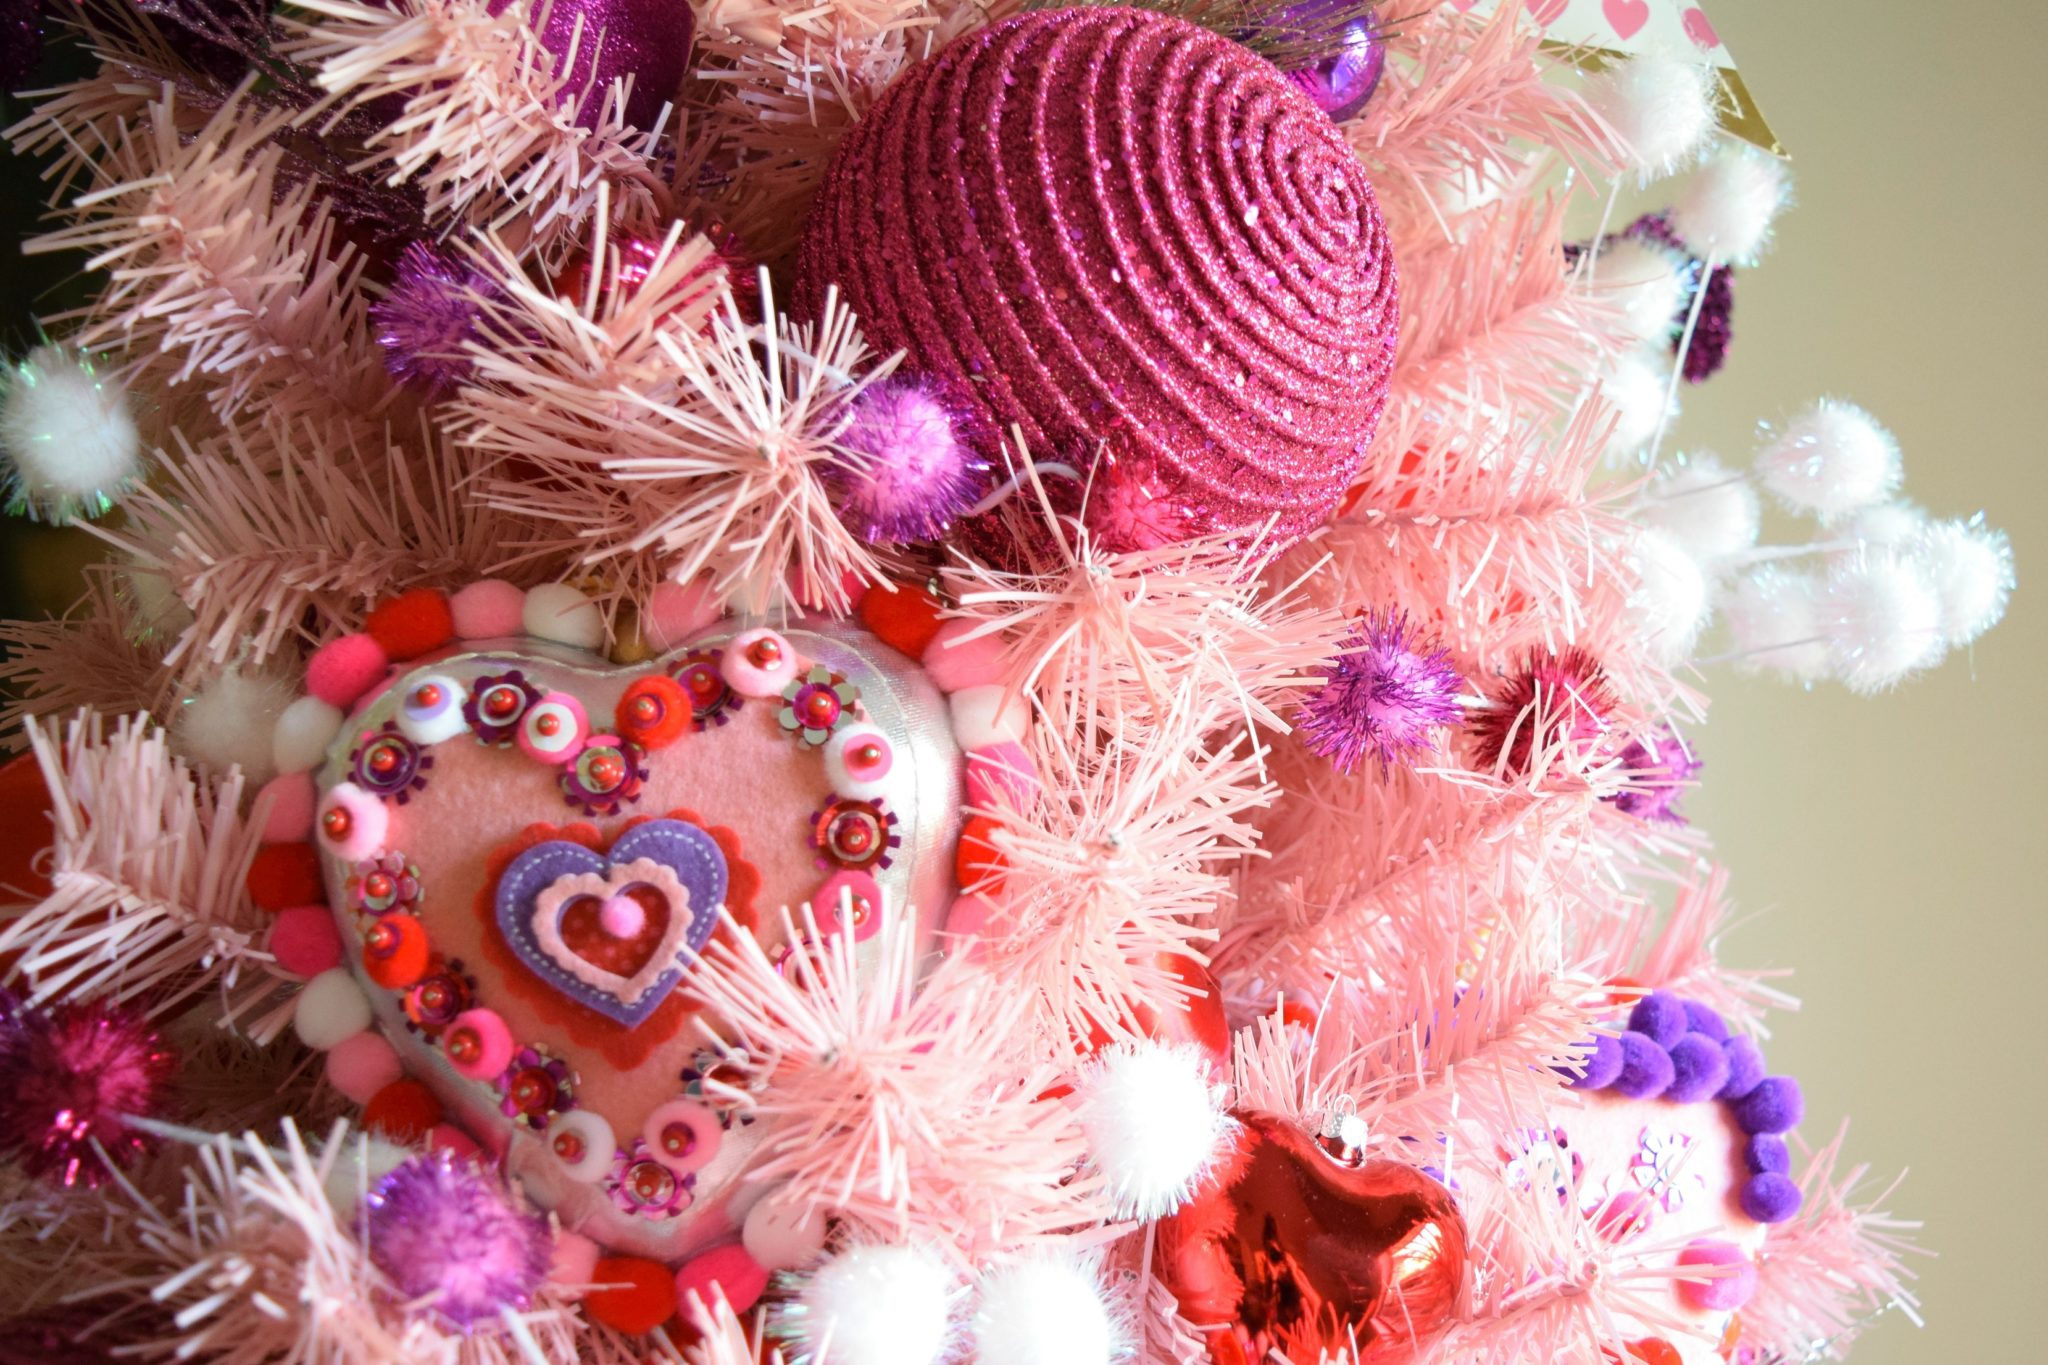 Adorable Valentine's Day ornaments to make with the kids by Jennifer Perkins